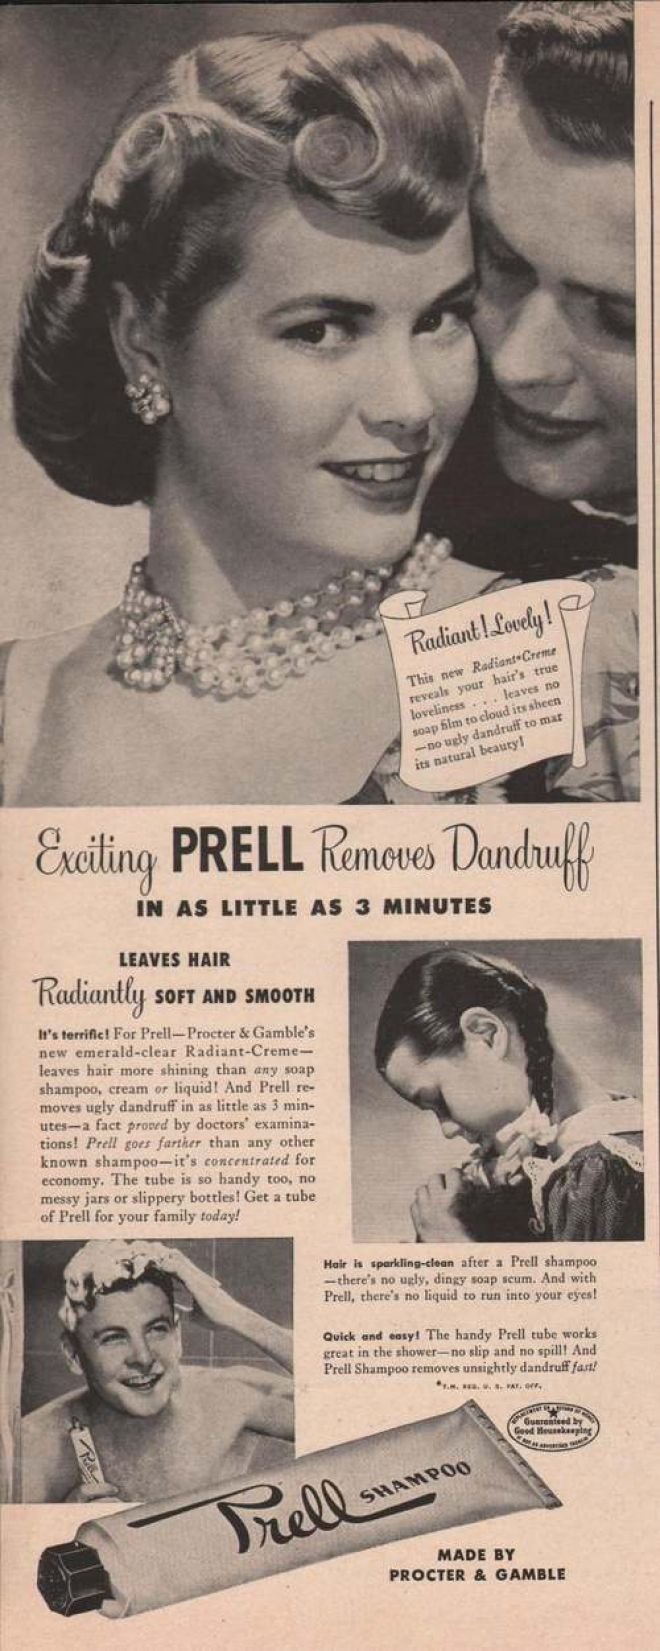 vintage beauty ads with celebrities | Vintage Beauty and Hygiene Ads of the 1940s (Page 92)